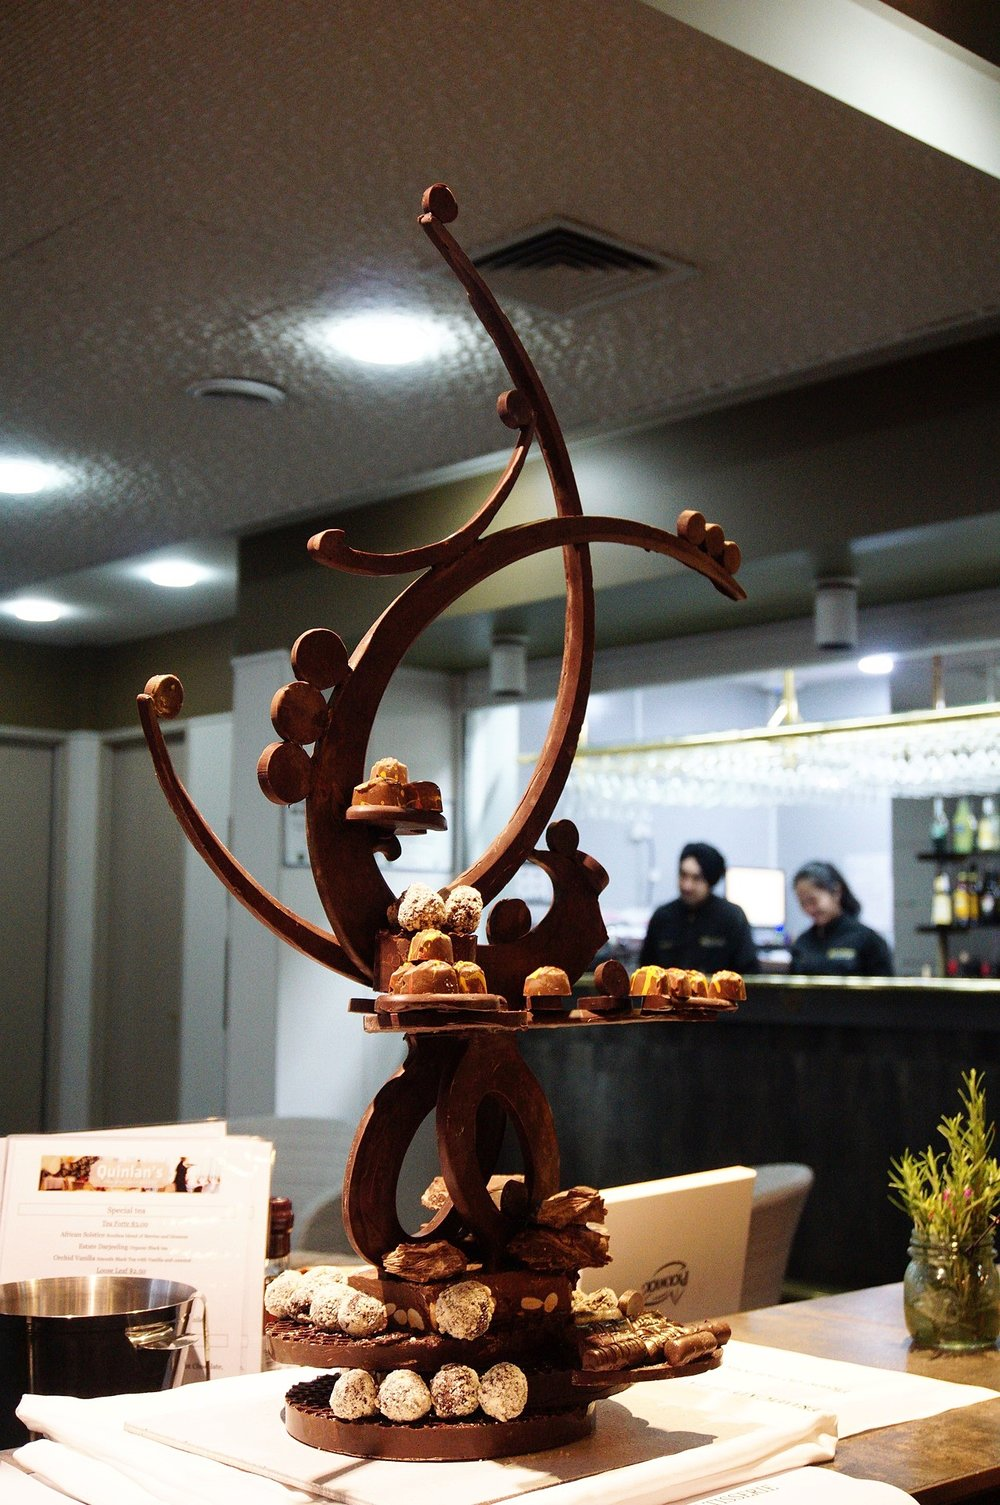 Amazing Chocolate Sculpture